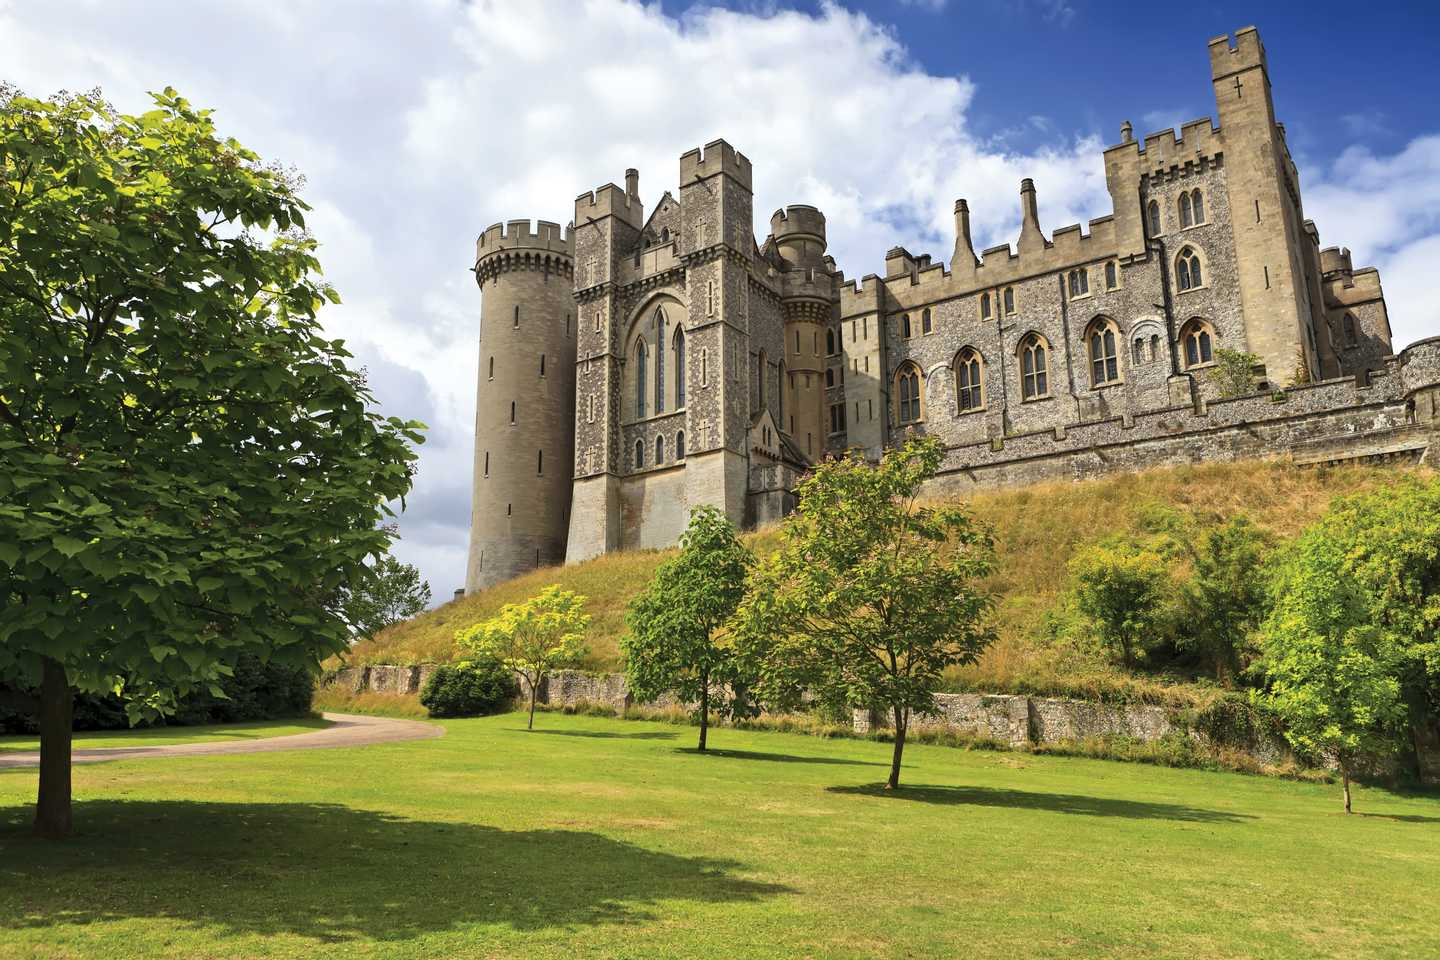 Picturesque Arundel Castle